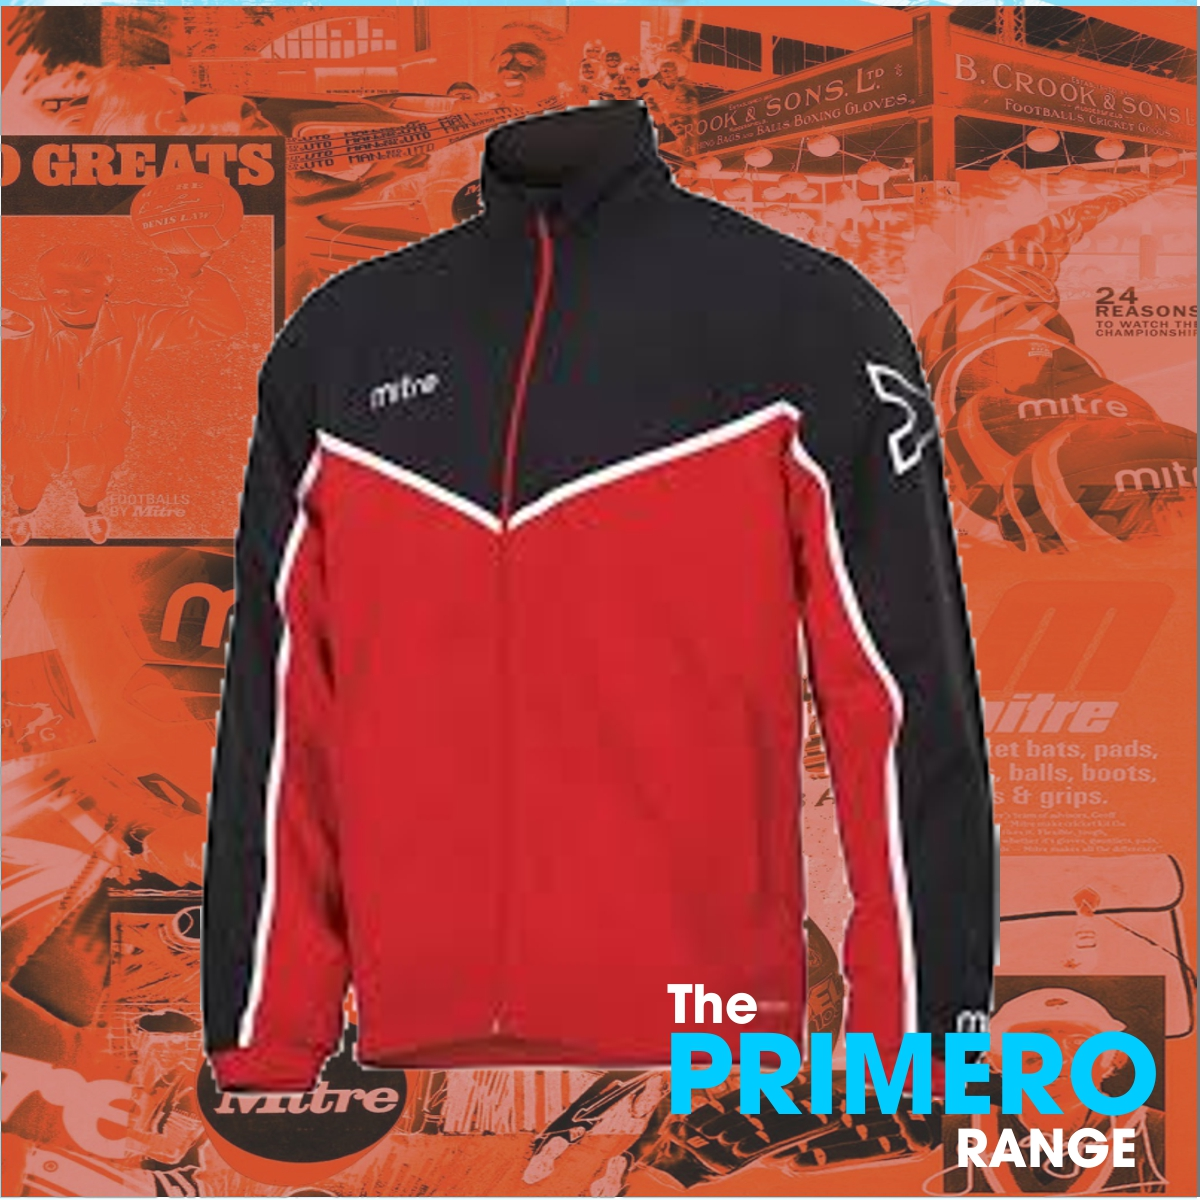 red track suit top